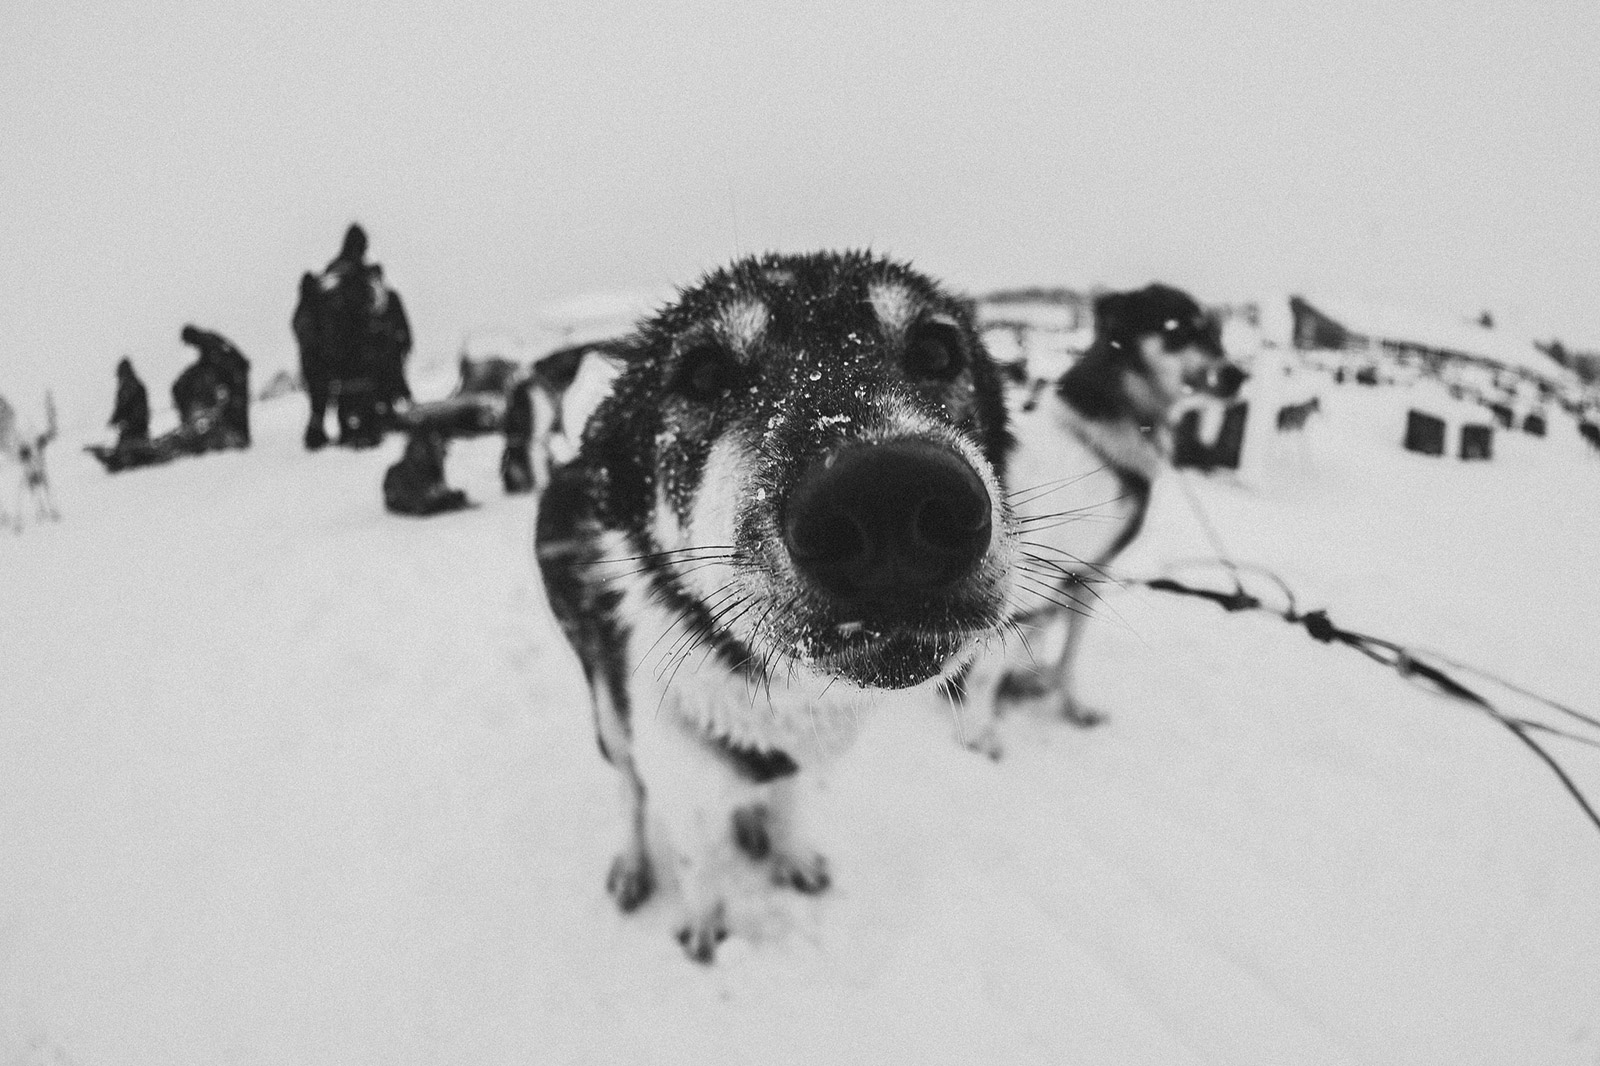 Closeup of sled dog in Norway